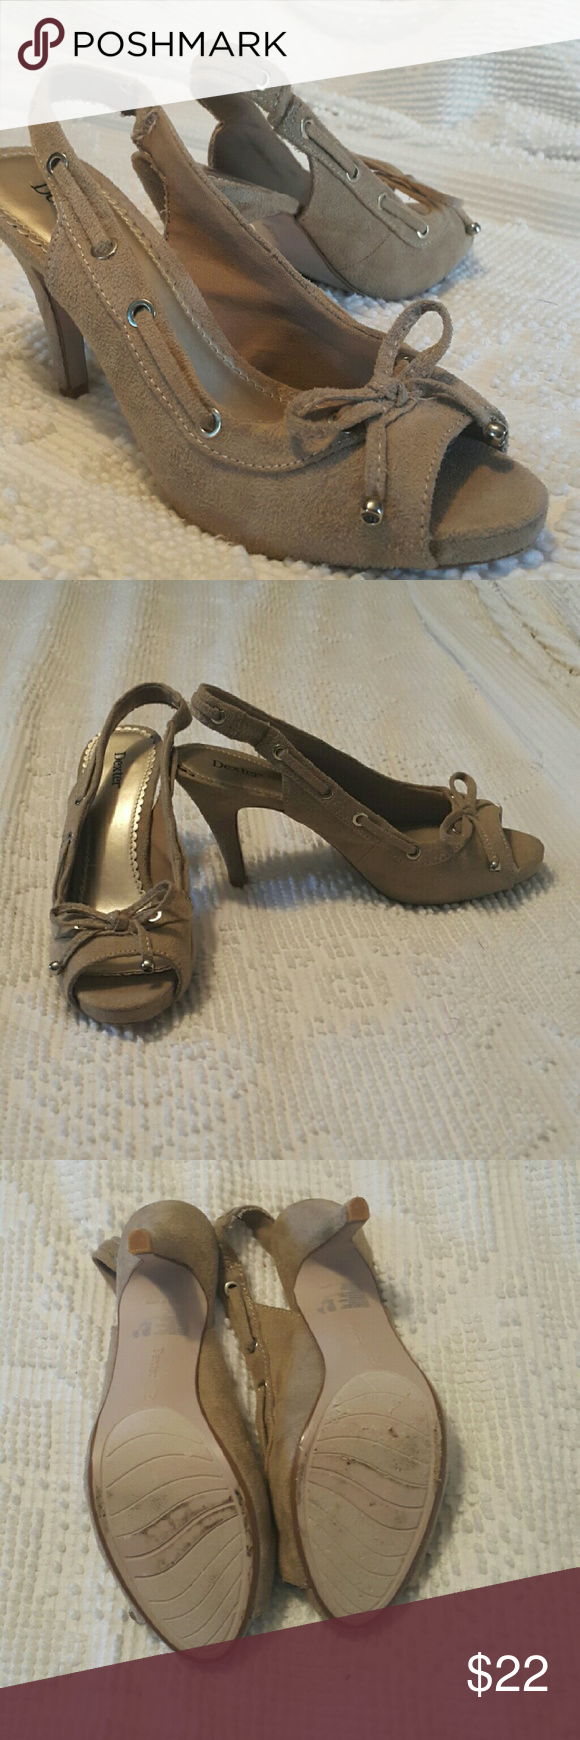 Pretty Tan/Beige Heels Very cute size 8.5 tan heels with bow and heel strap. Feels like a suede-like material. Only worn twice for just a little while. As you can see in the pictures, the only wear is some mild scuffing on the bottoms. Goes with almost any outfit! Super cute! Dexter Shoes Heels